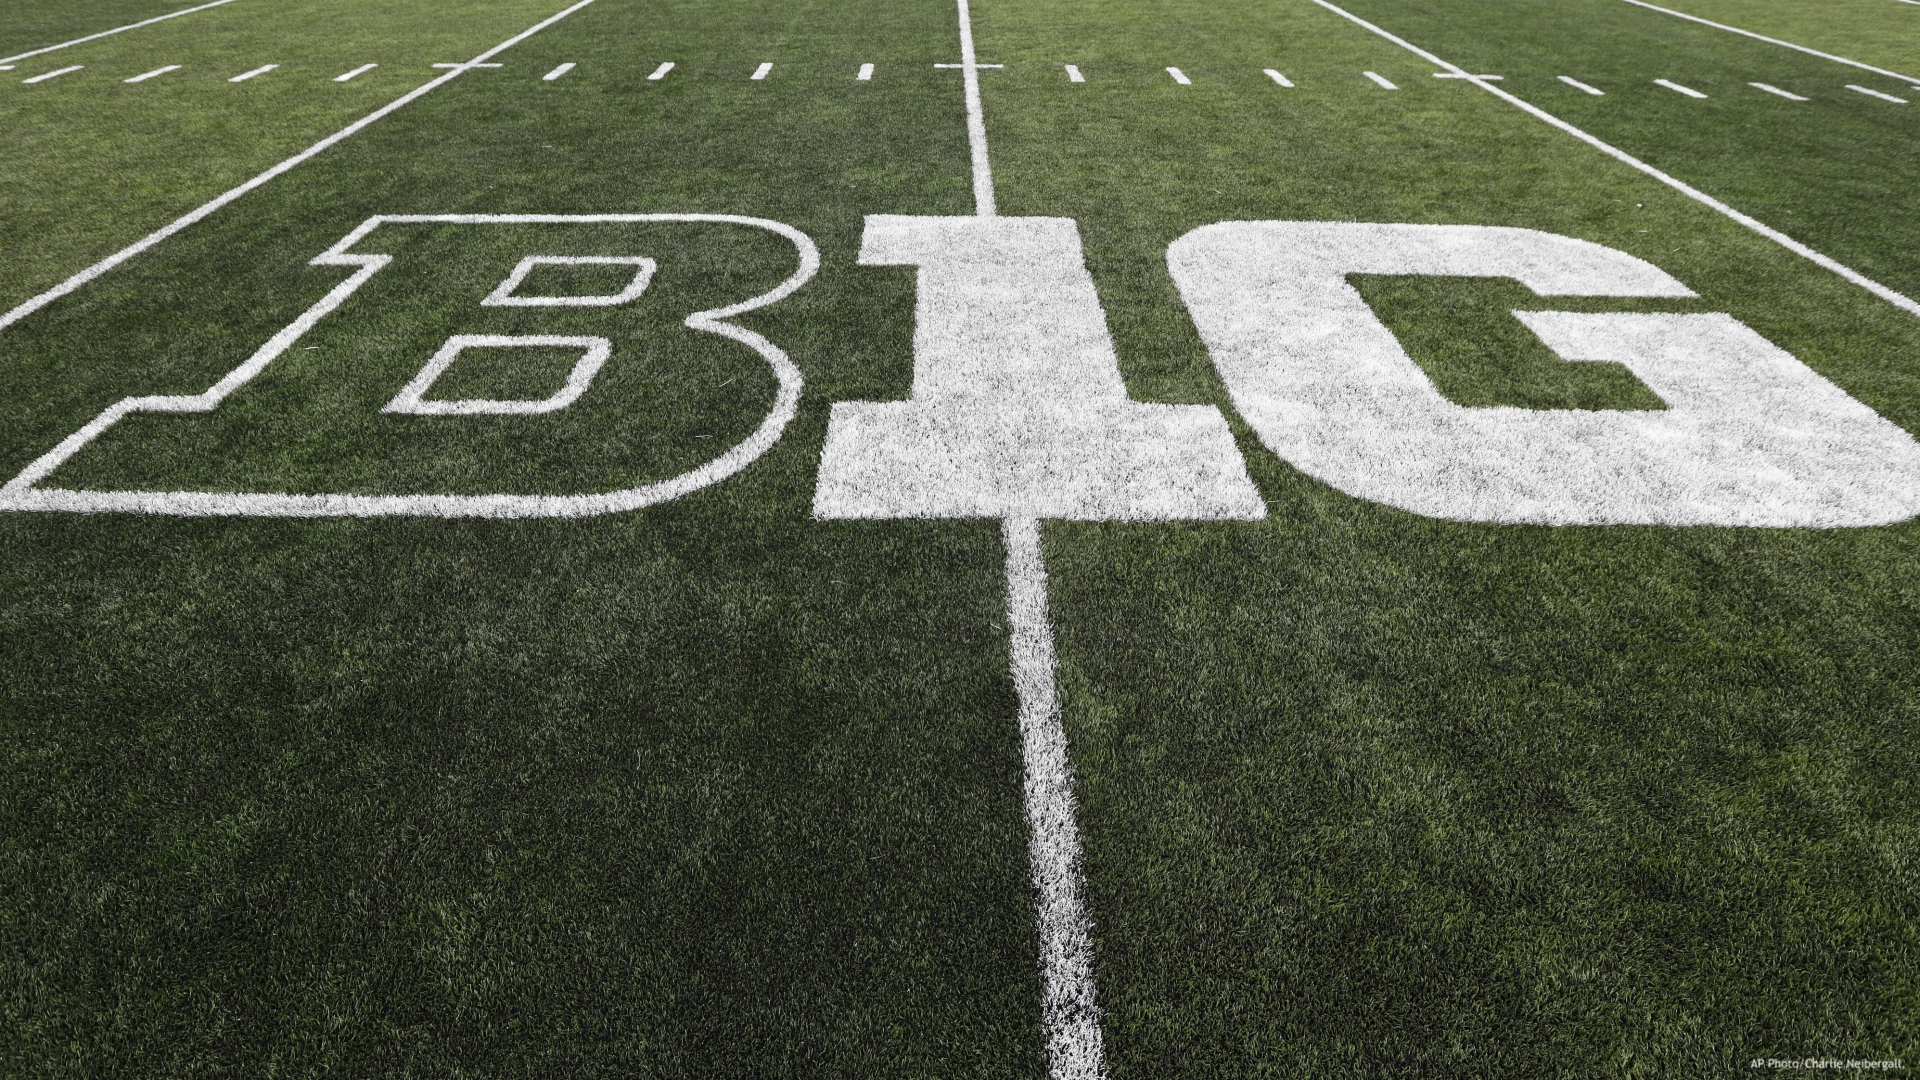 In this Aug. 31, 2019, file photo, the Big Ten logo is displayed on the field before an NCAA college football game between Iowa and Miami of Ohio in Iowa City, Iowa. Big Ten presidents voted 11-3 to postpone the football season until spring, bringing some clarity to a key question raised in a lawsuit brought by a group of Nebraska football players. The vote breakdown was revealed Monday, Aug. 31, 2020, in the Big Ten's court filing in response to the lawsuit. (AP Photo/Charlie Neibergall, File)